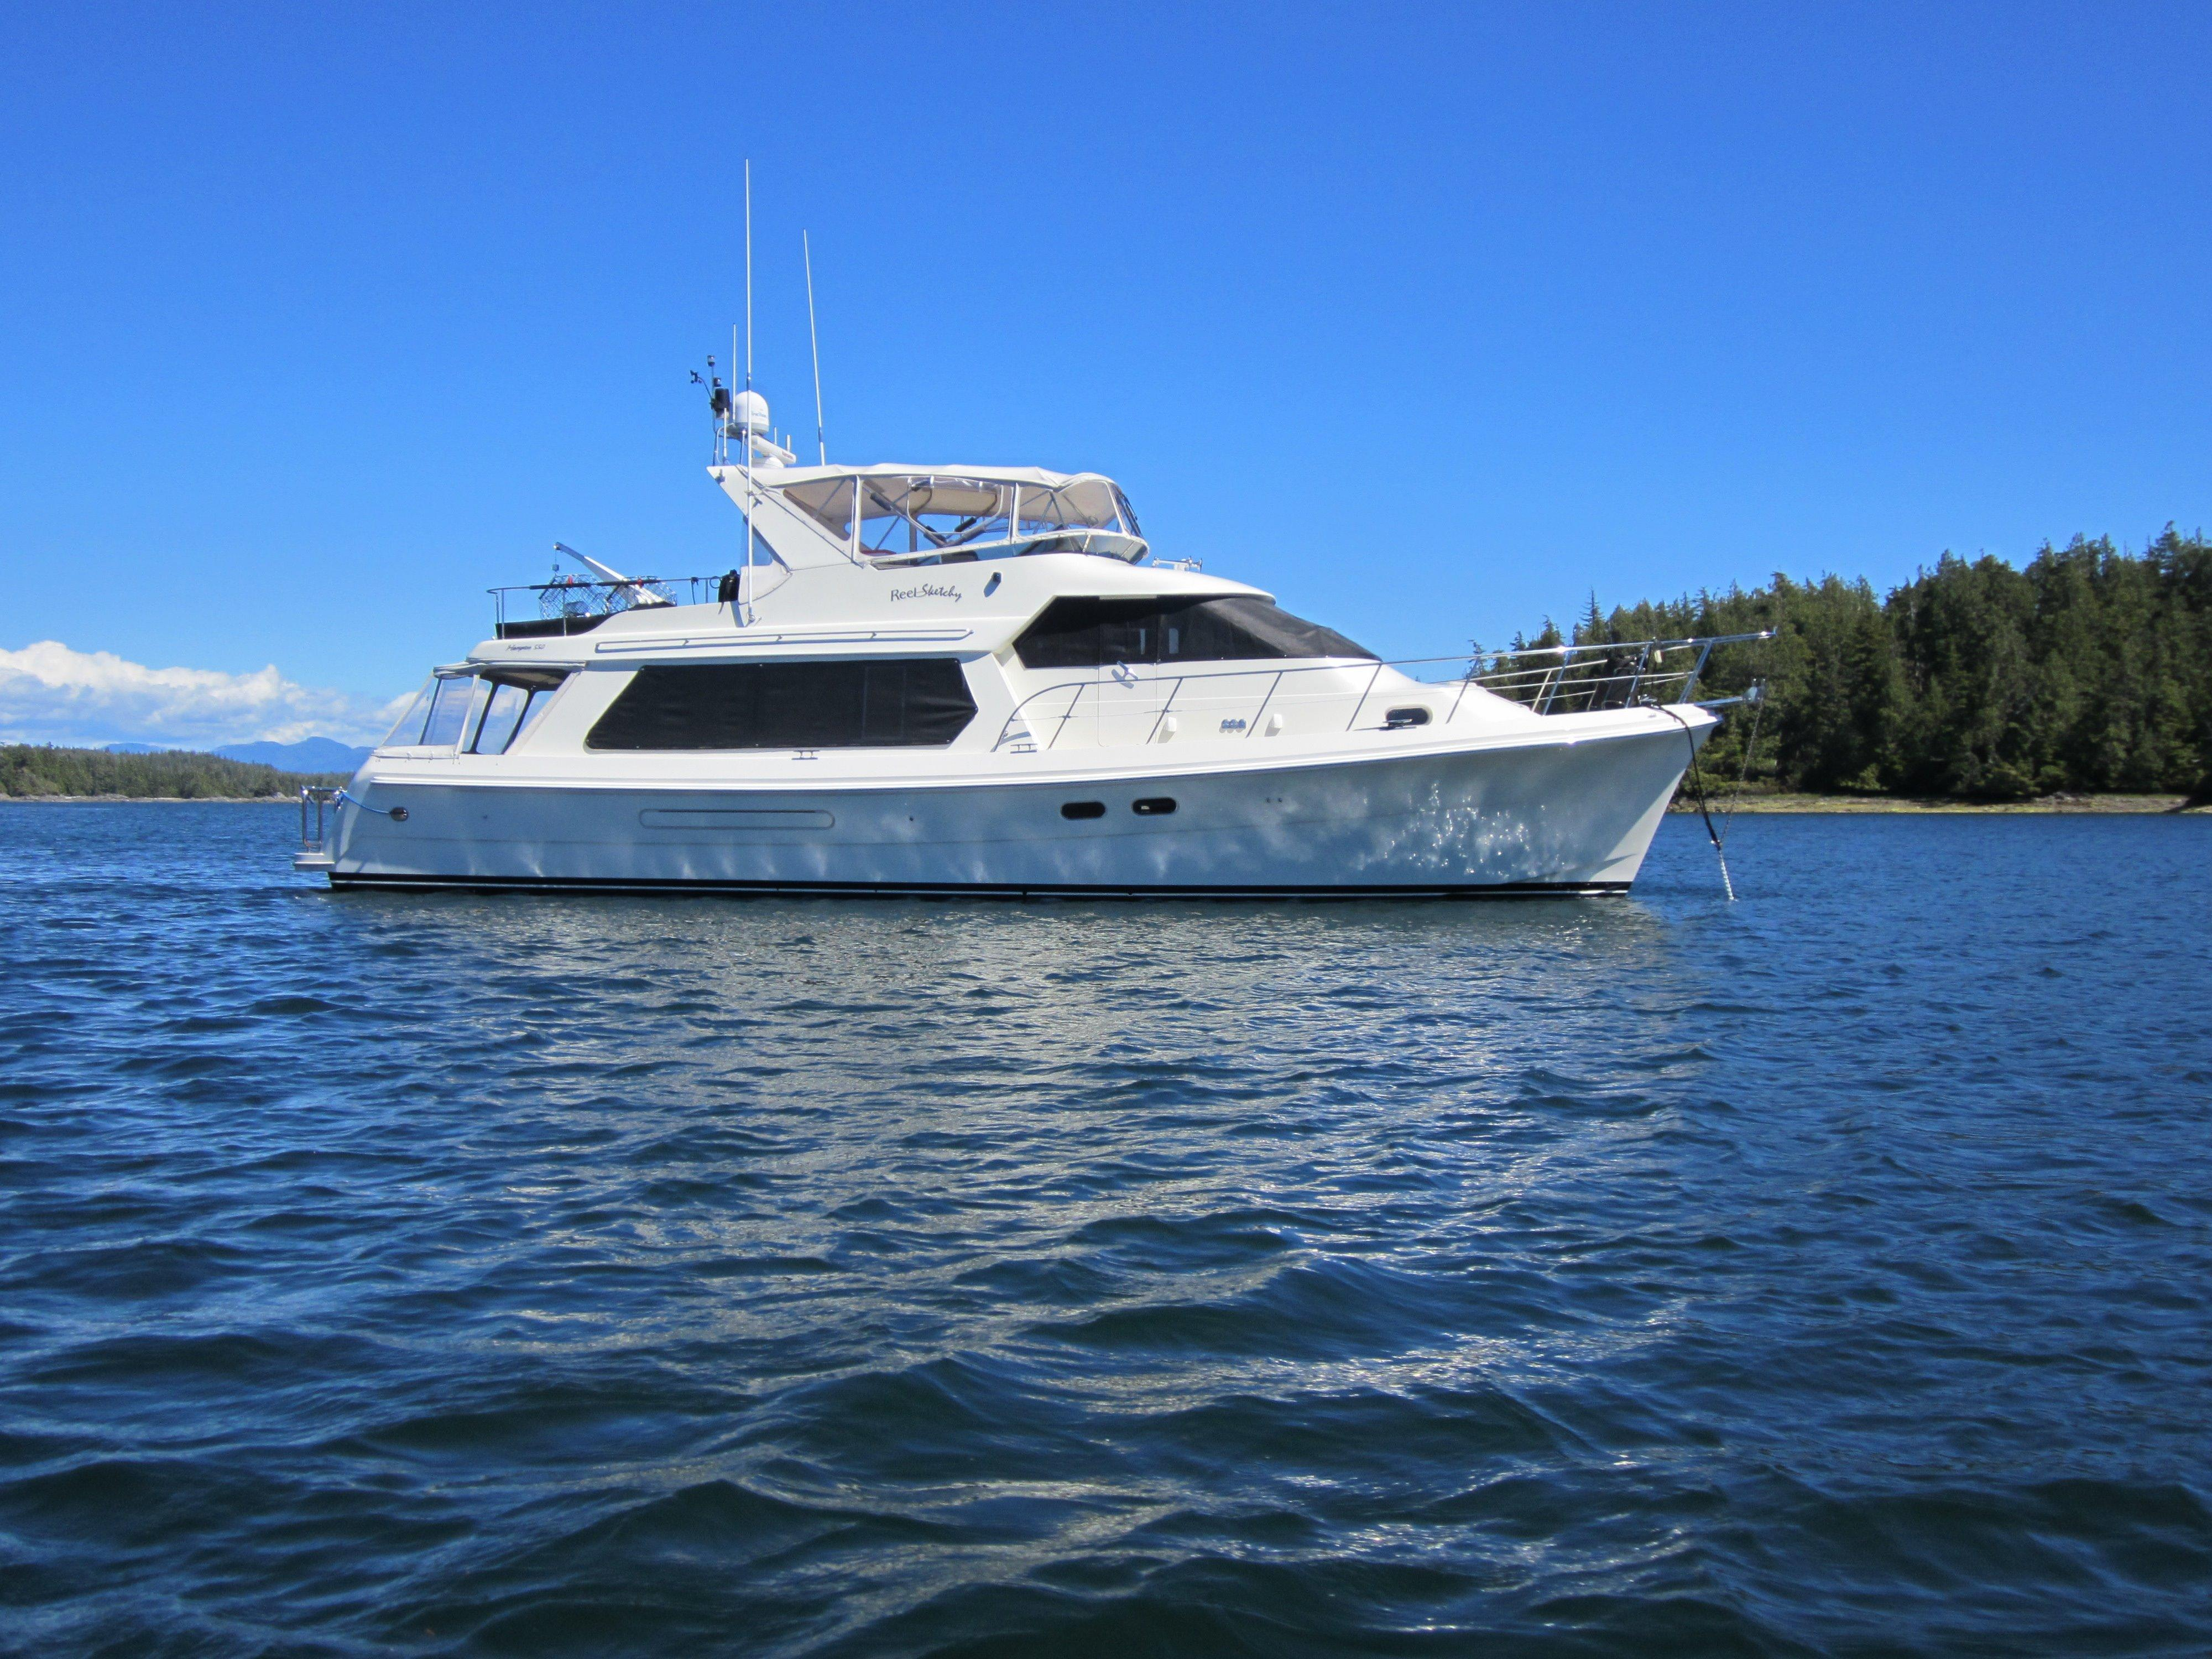 Hatteras 53 Motor Yacht Boats For Sale Yachtworld 2017 2018 Cars Reviews